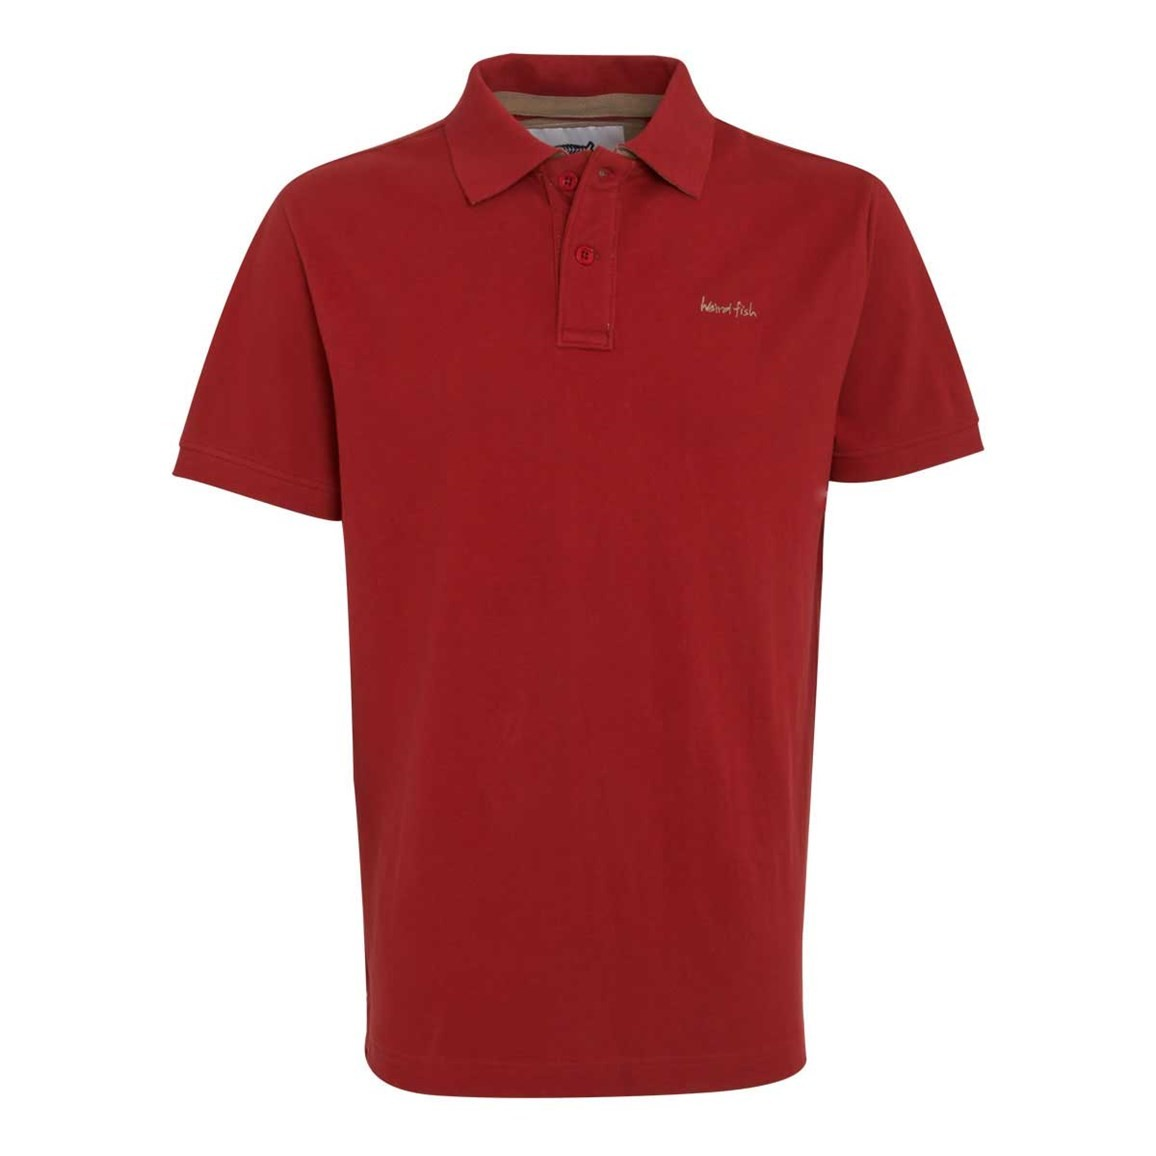 Image of Weird Fish Barros Classic Pique Polo Shirt Chilli Red Size 5XL